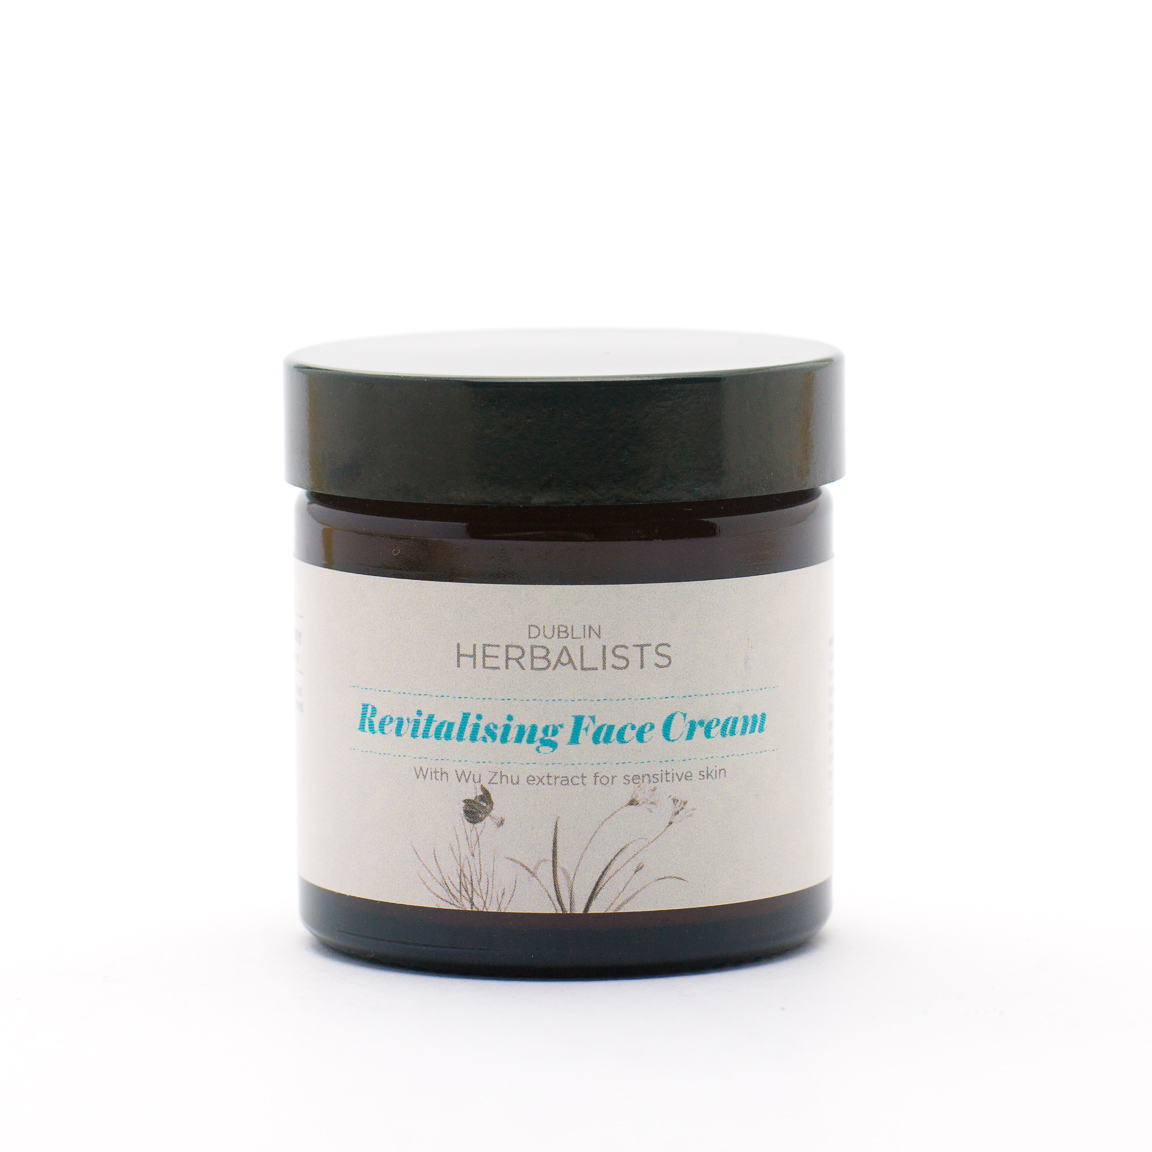 Revitalising Face Cream